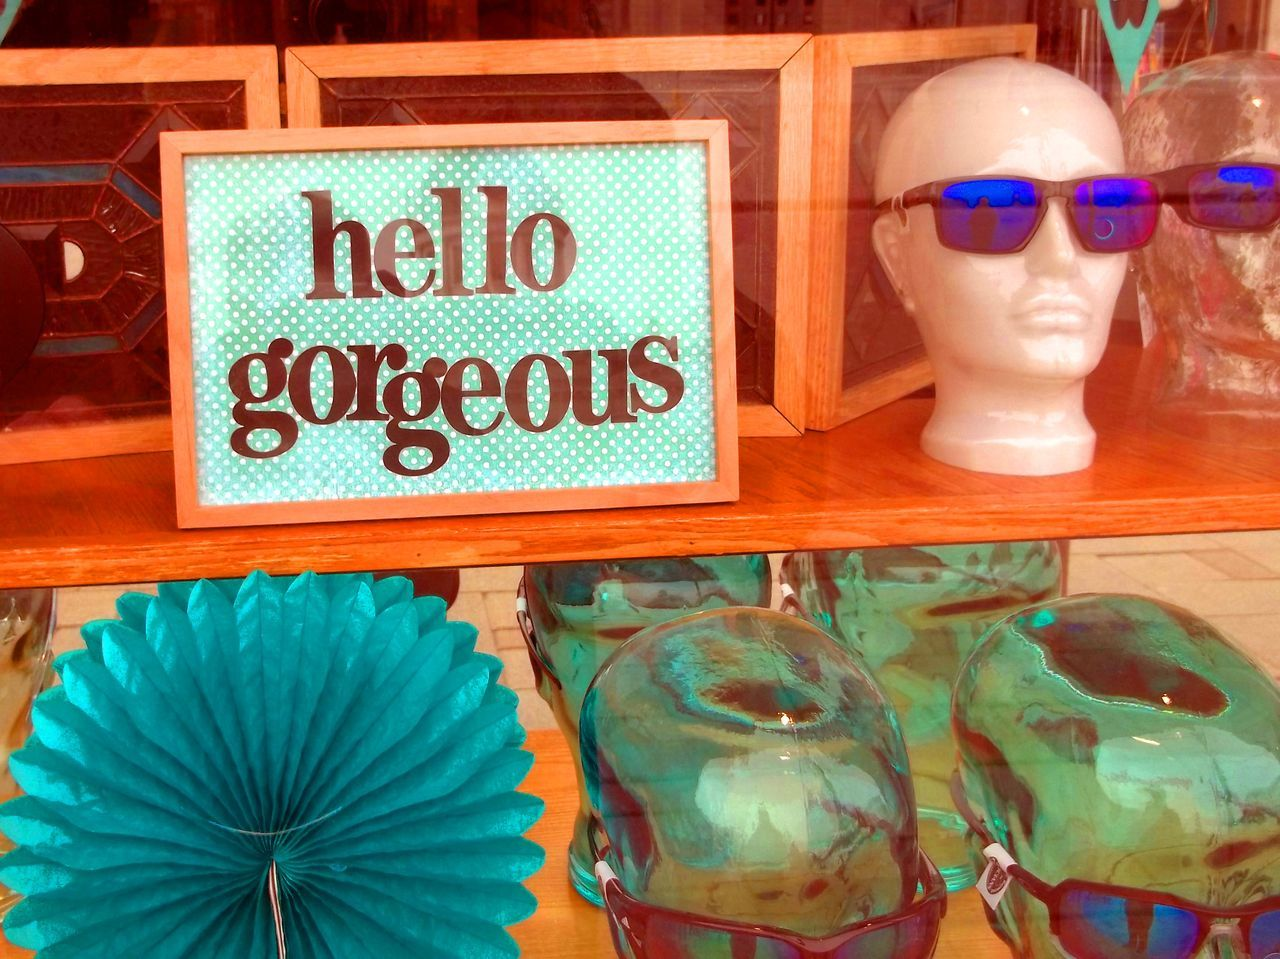 Yes you -- hello gorgeous !! Avantegarde Business Close-up Communication Consumerism Day Display Fashion Fashion Accesories For Sale High Fashion Market Millennial No People Outdoors Price Tag Retail  Retail Display Shop Window Dummy Store Style Style And Fashion Sunglasses Text